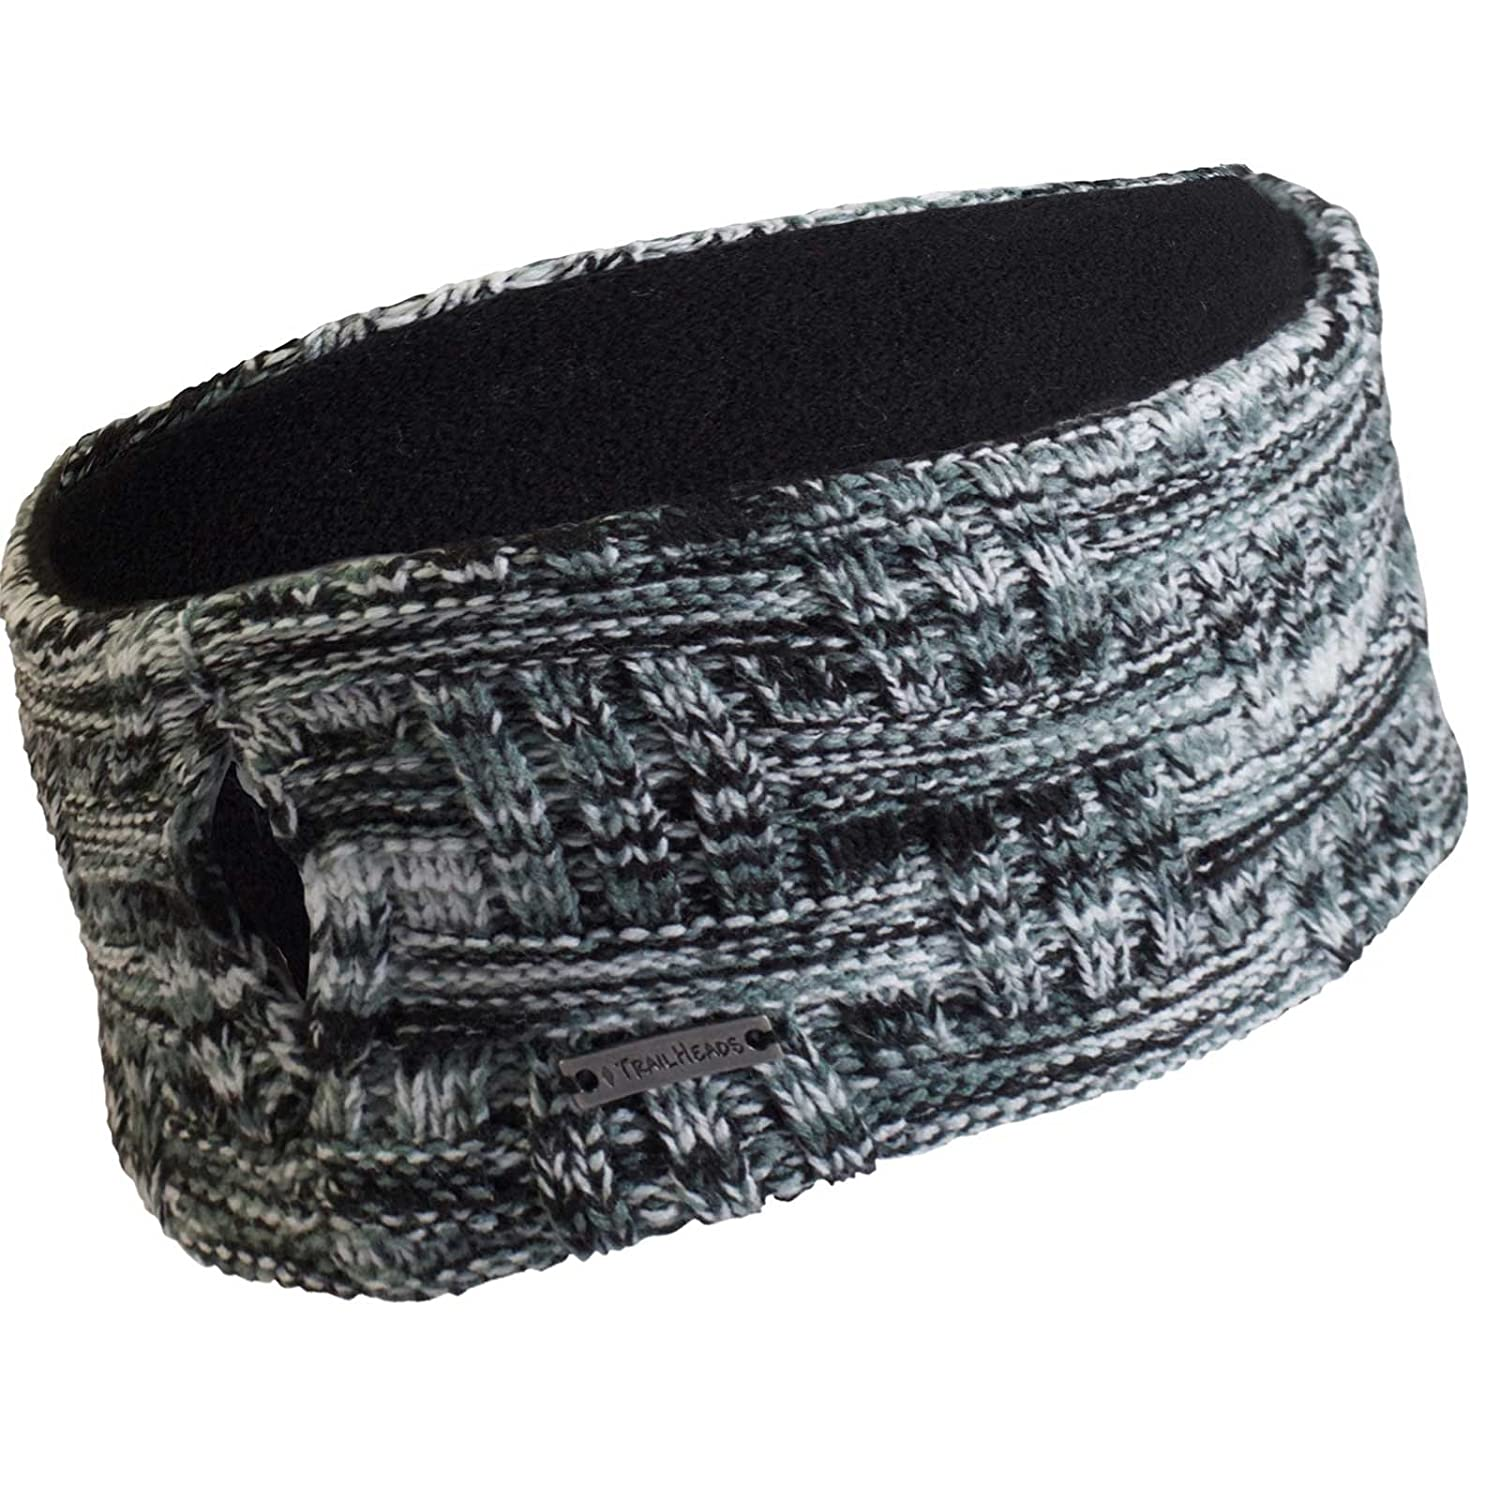 TrailHeads Women's Space Dye Knit Ponytail Headband - black & white